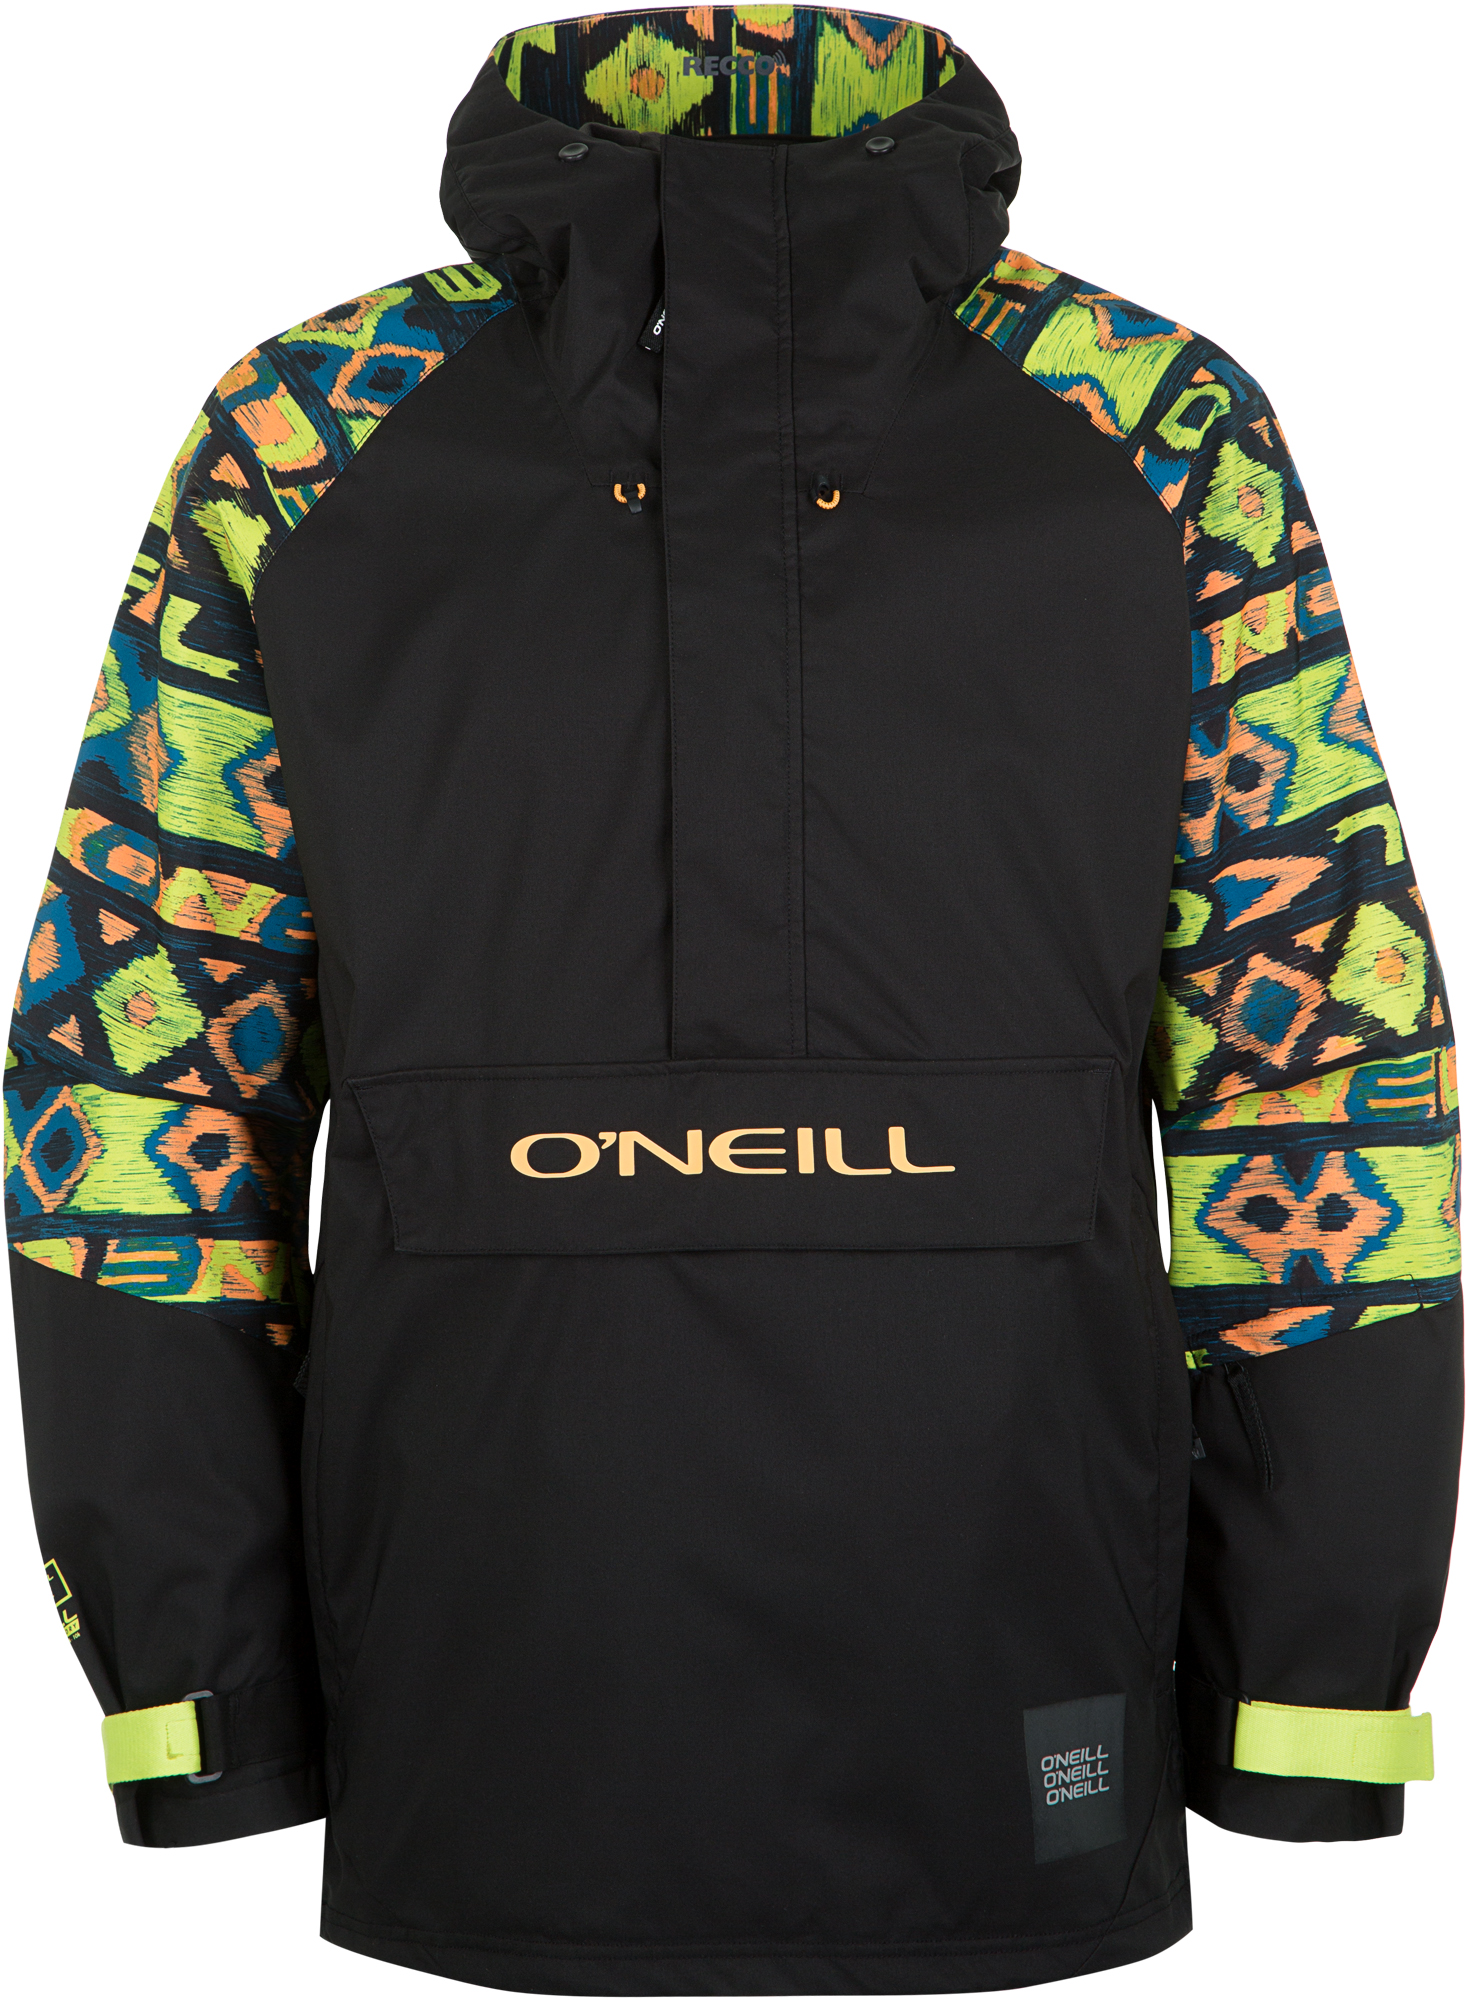 ONeill Куртка мужская Pm Original Anorak, размер 52-54